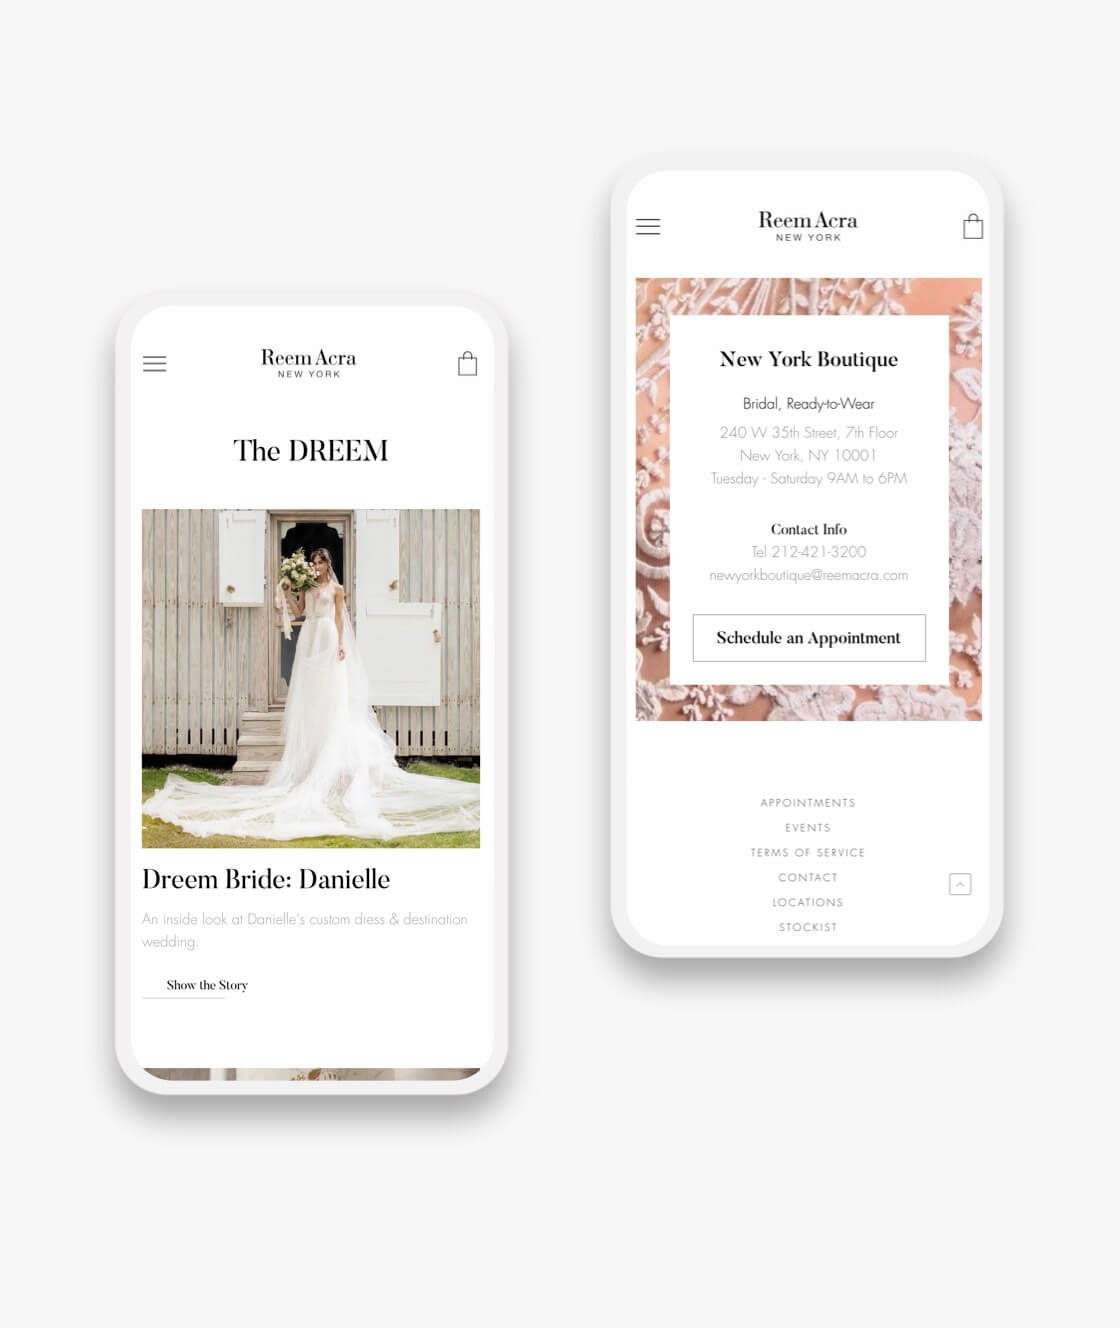 reem acra web pages on mobile phones